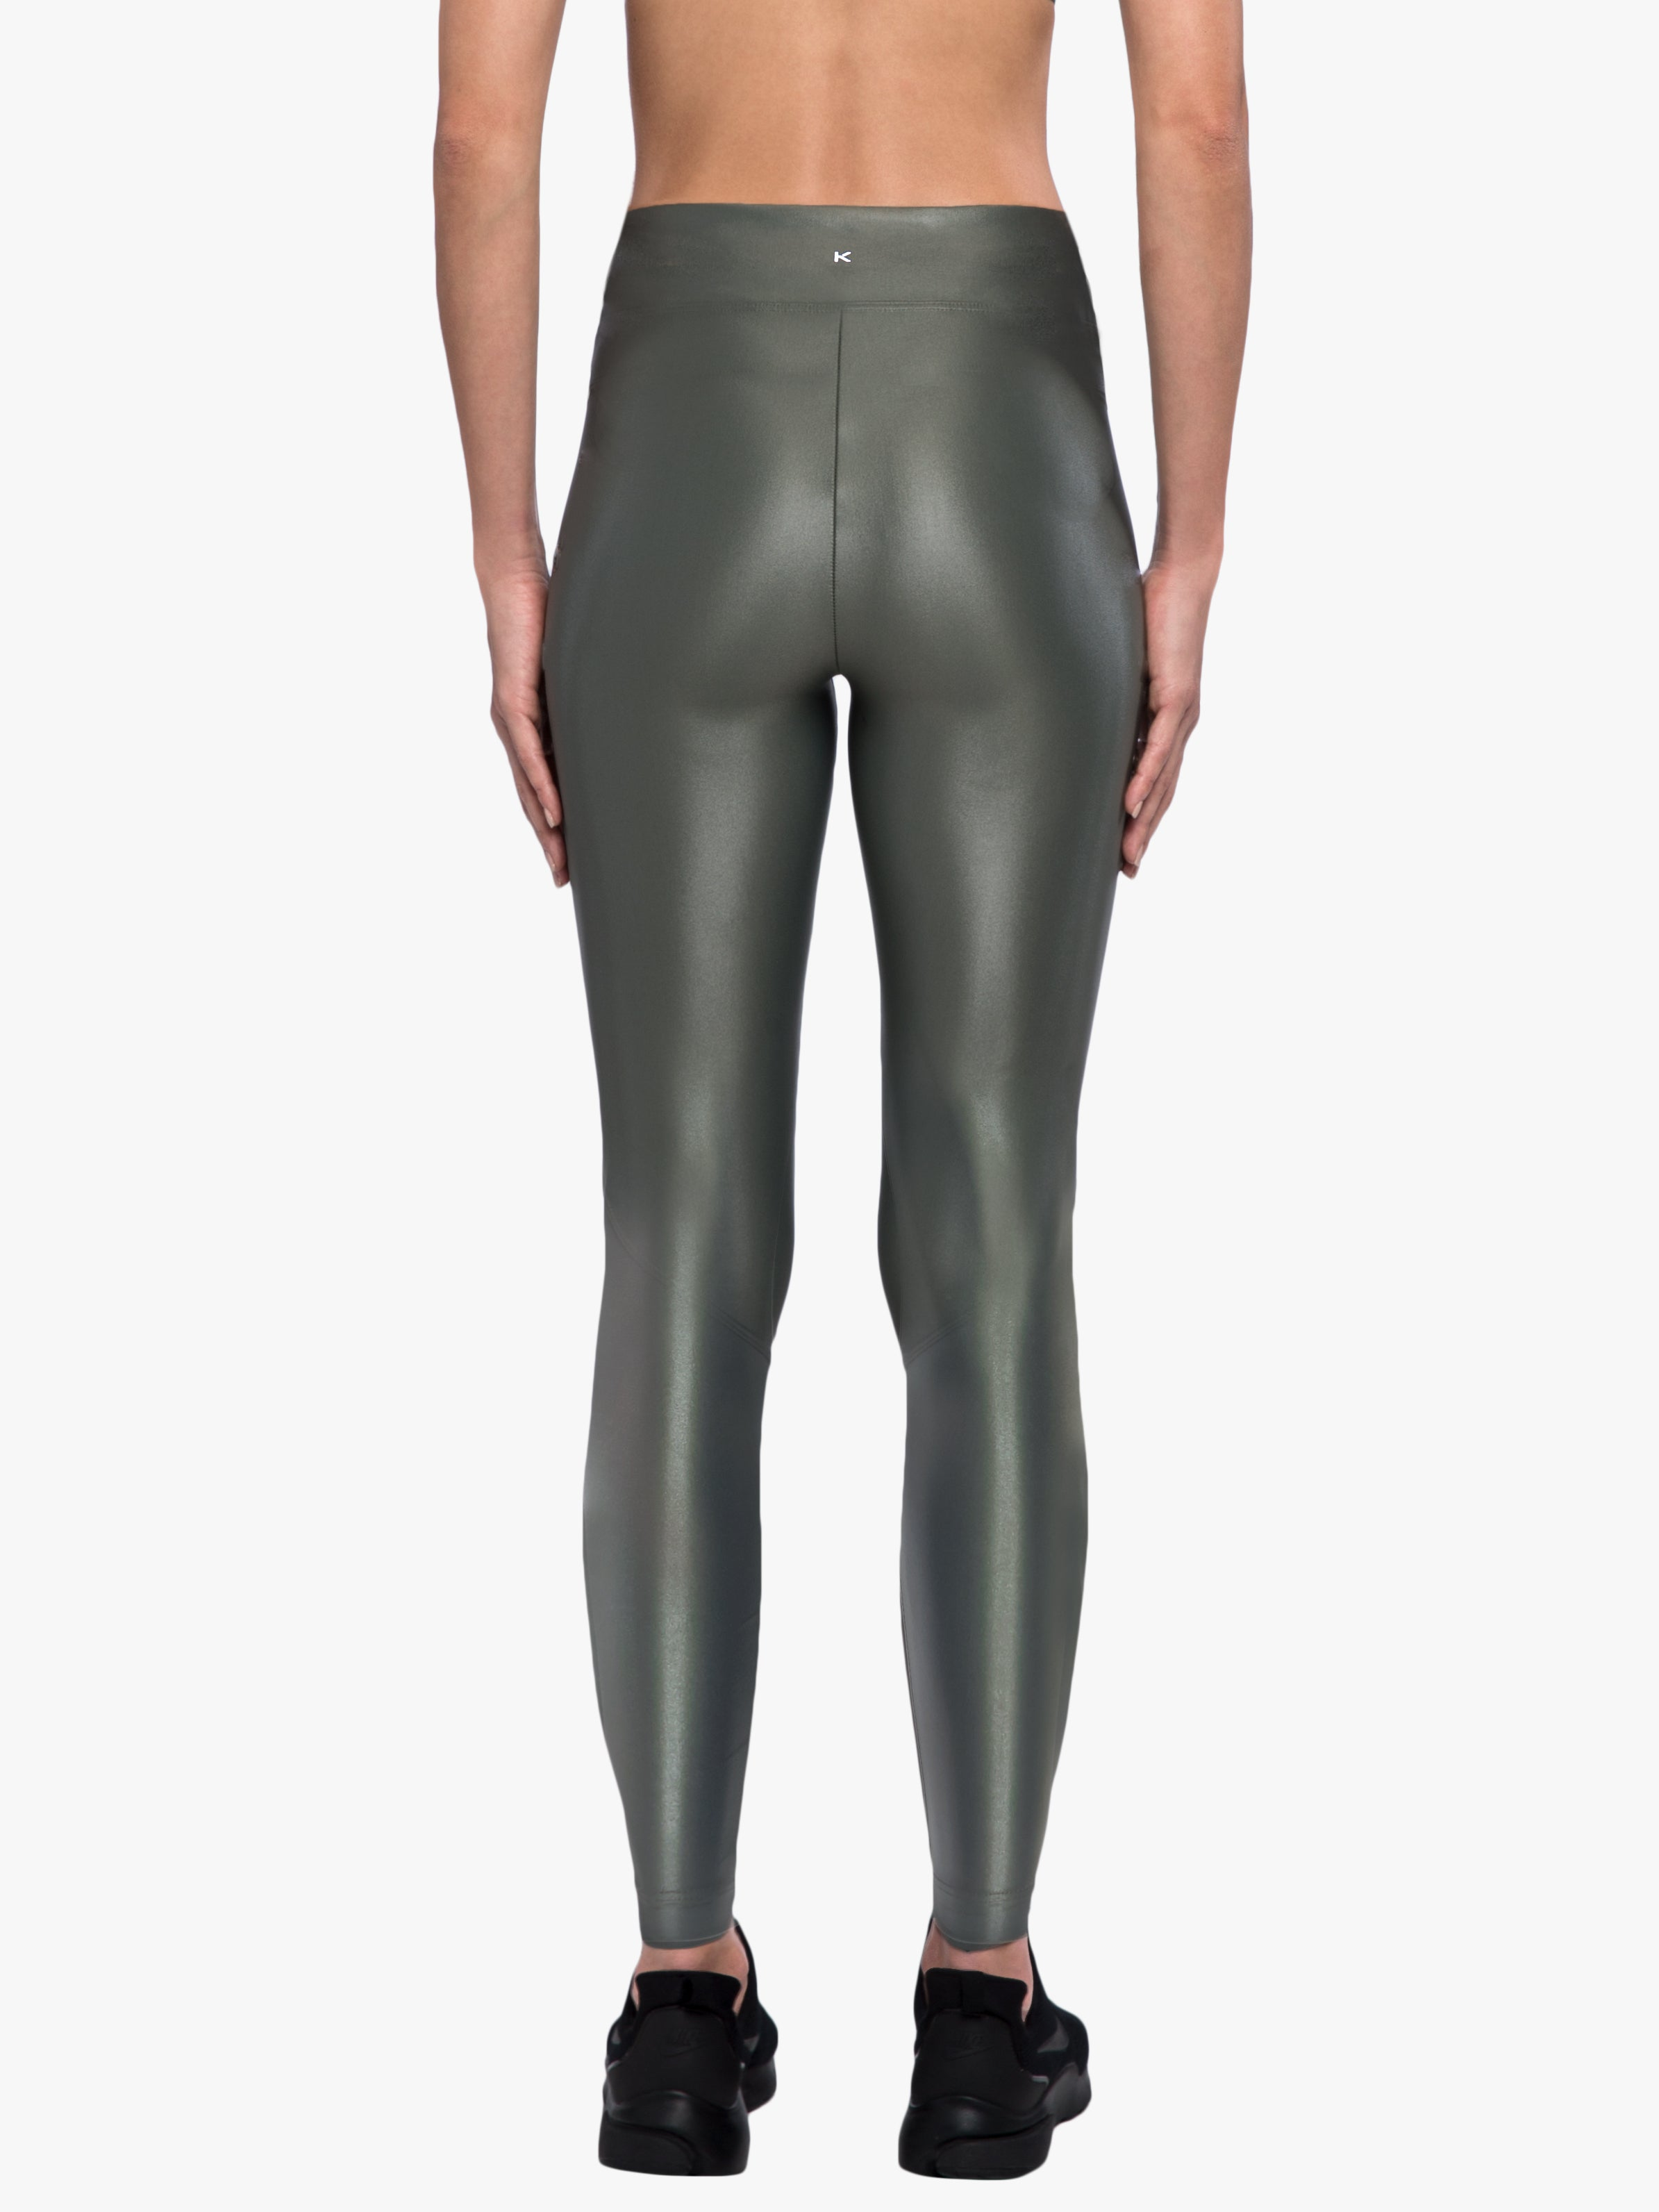 Lustrous High Rise Legging - Agave